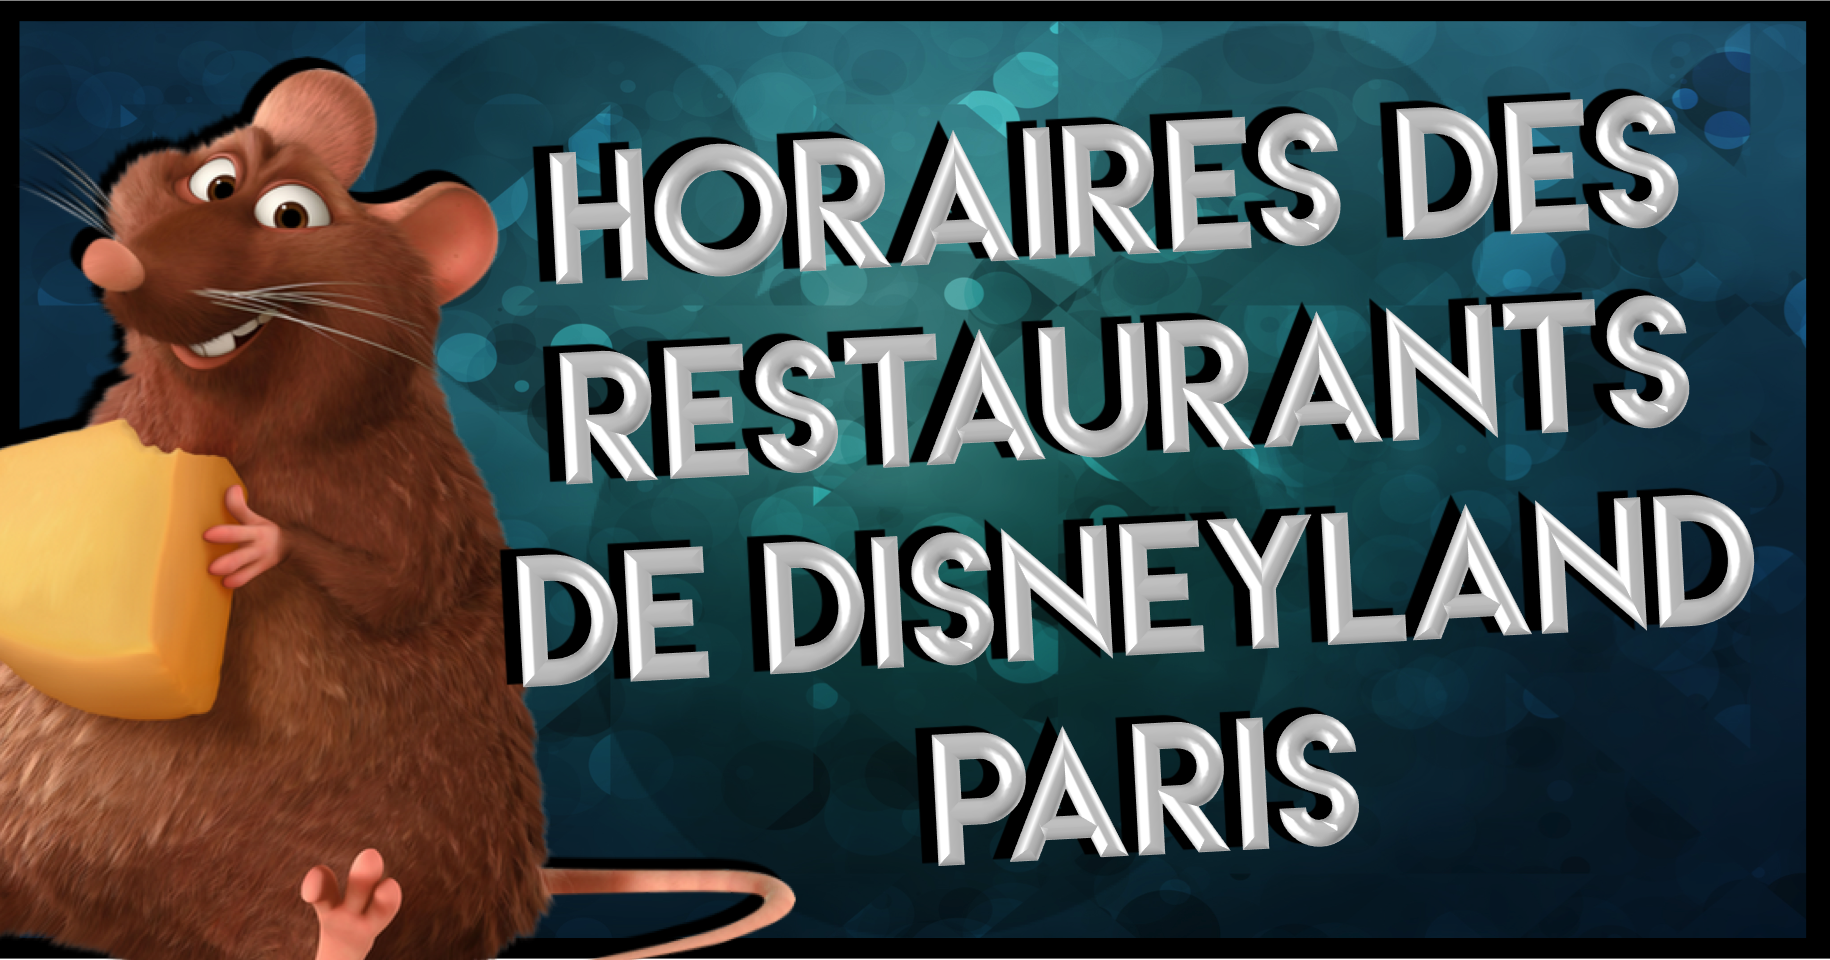 horaires des restaurants disneyland paris bons plans. Black Bedroom Furniture Sets. Home Design Ideas